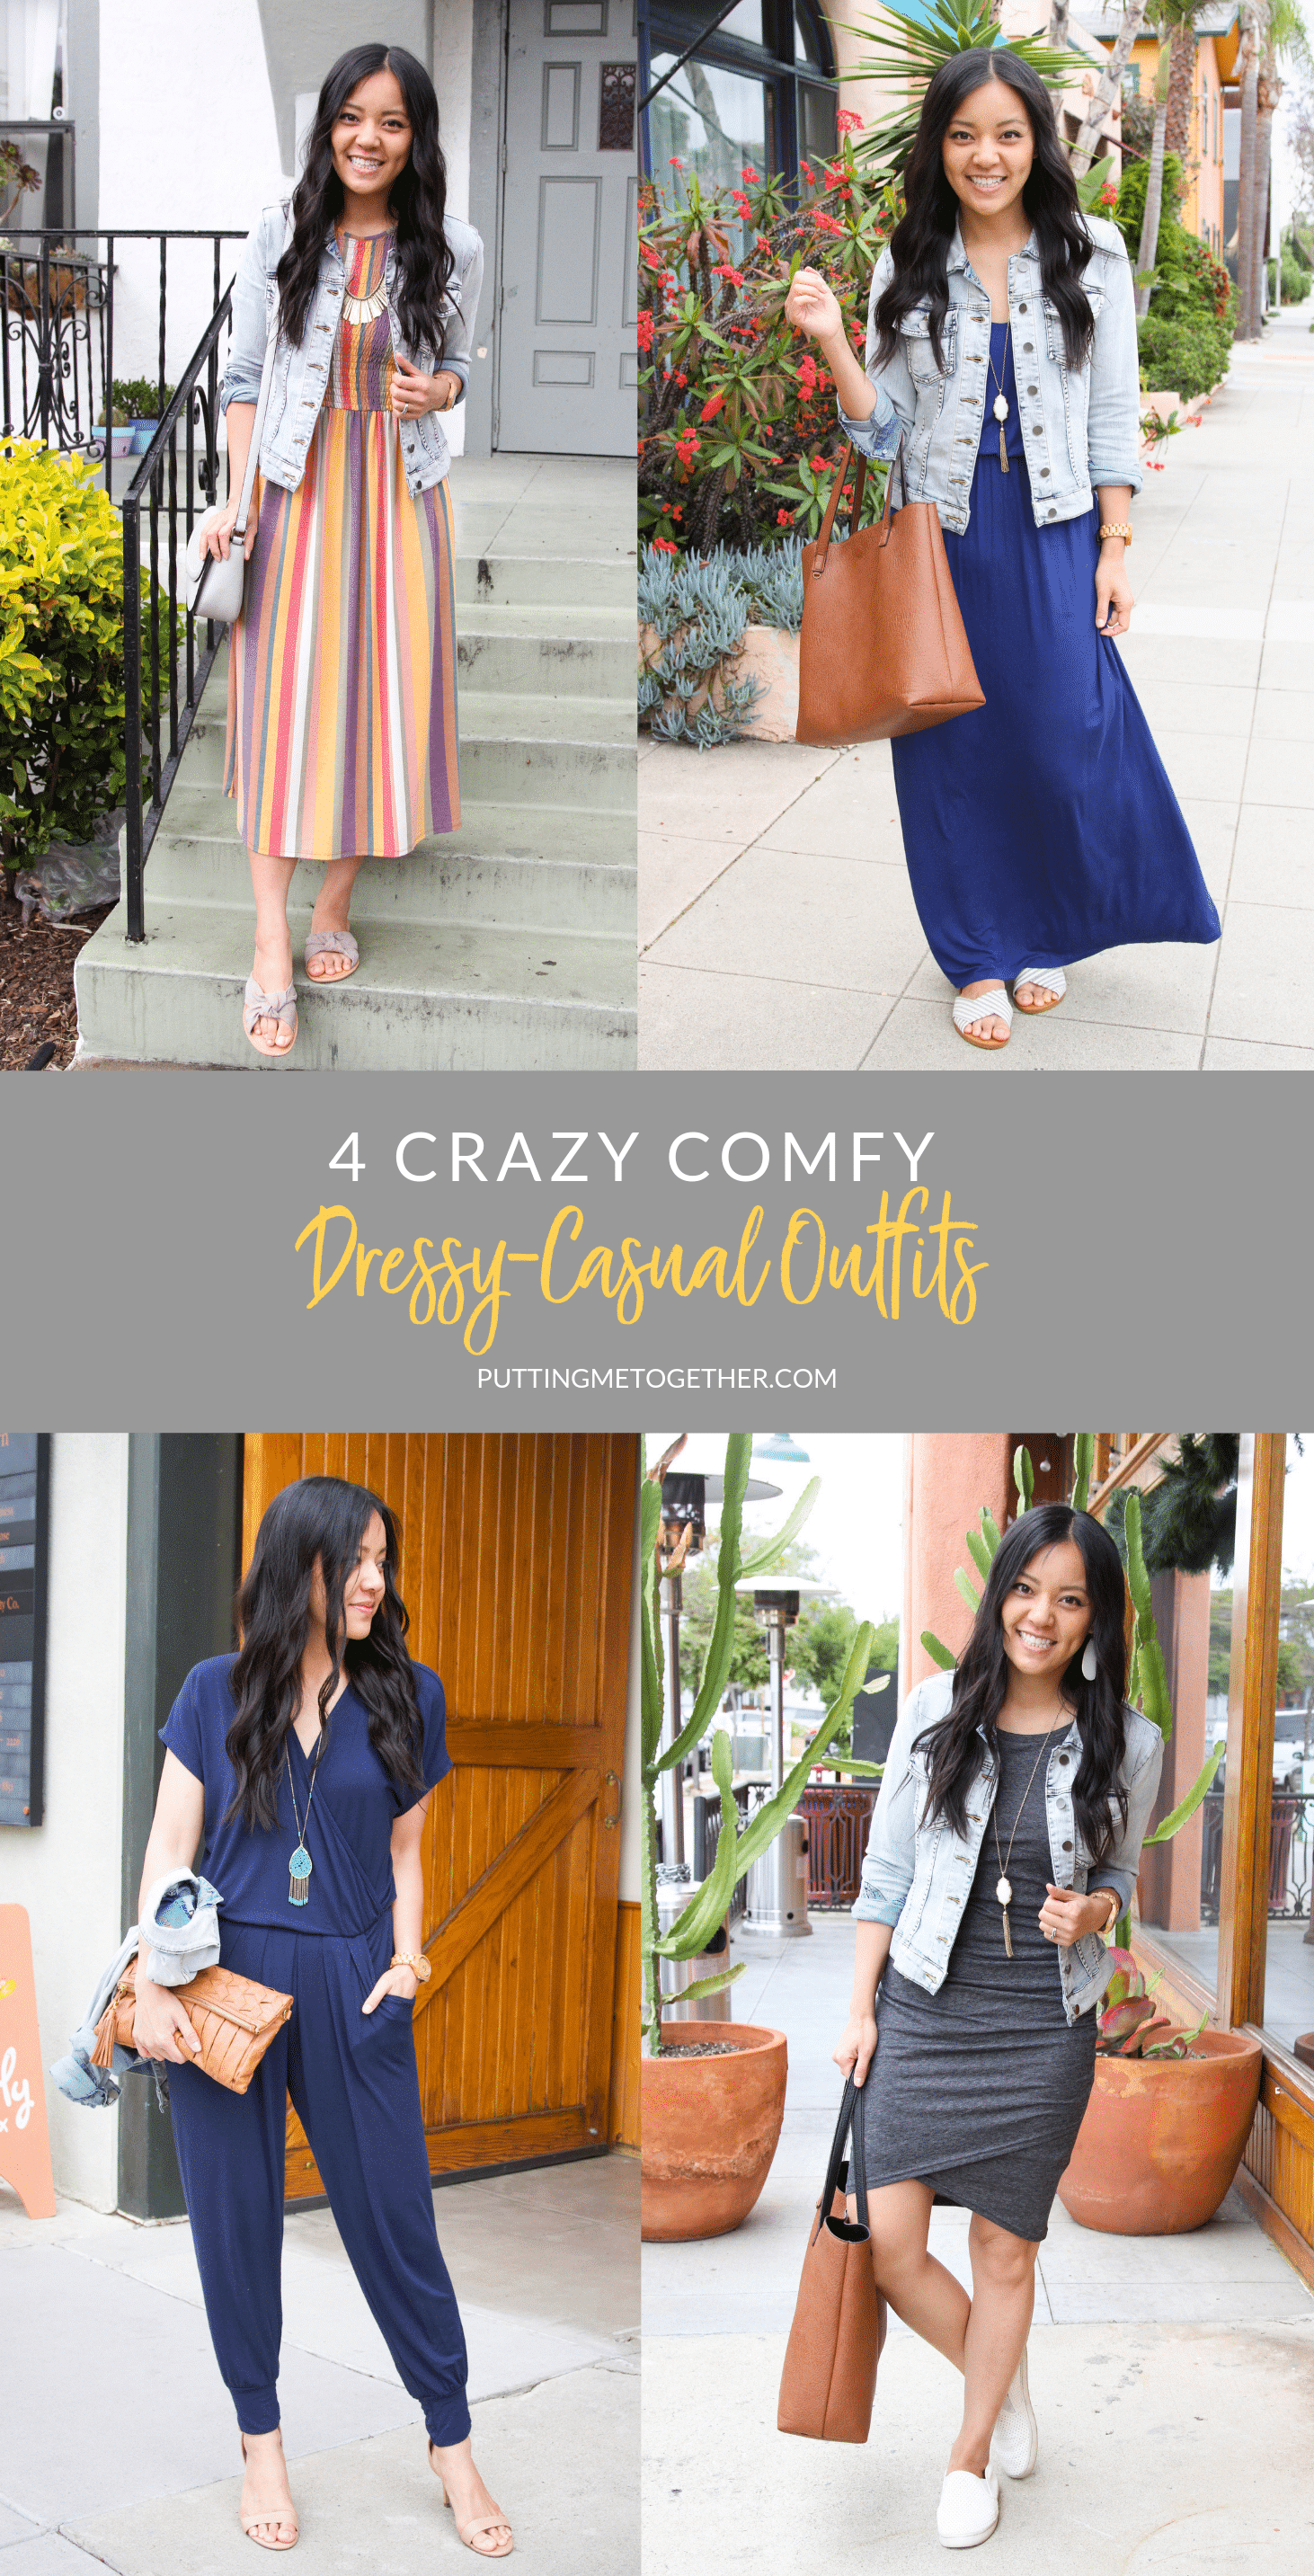 4 Crazy Comfy Dressy Casual Outfits